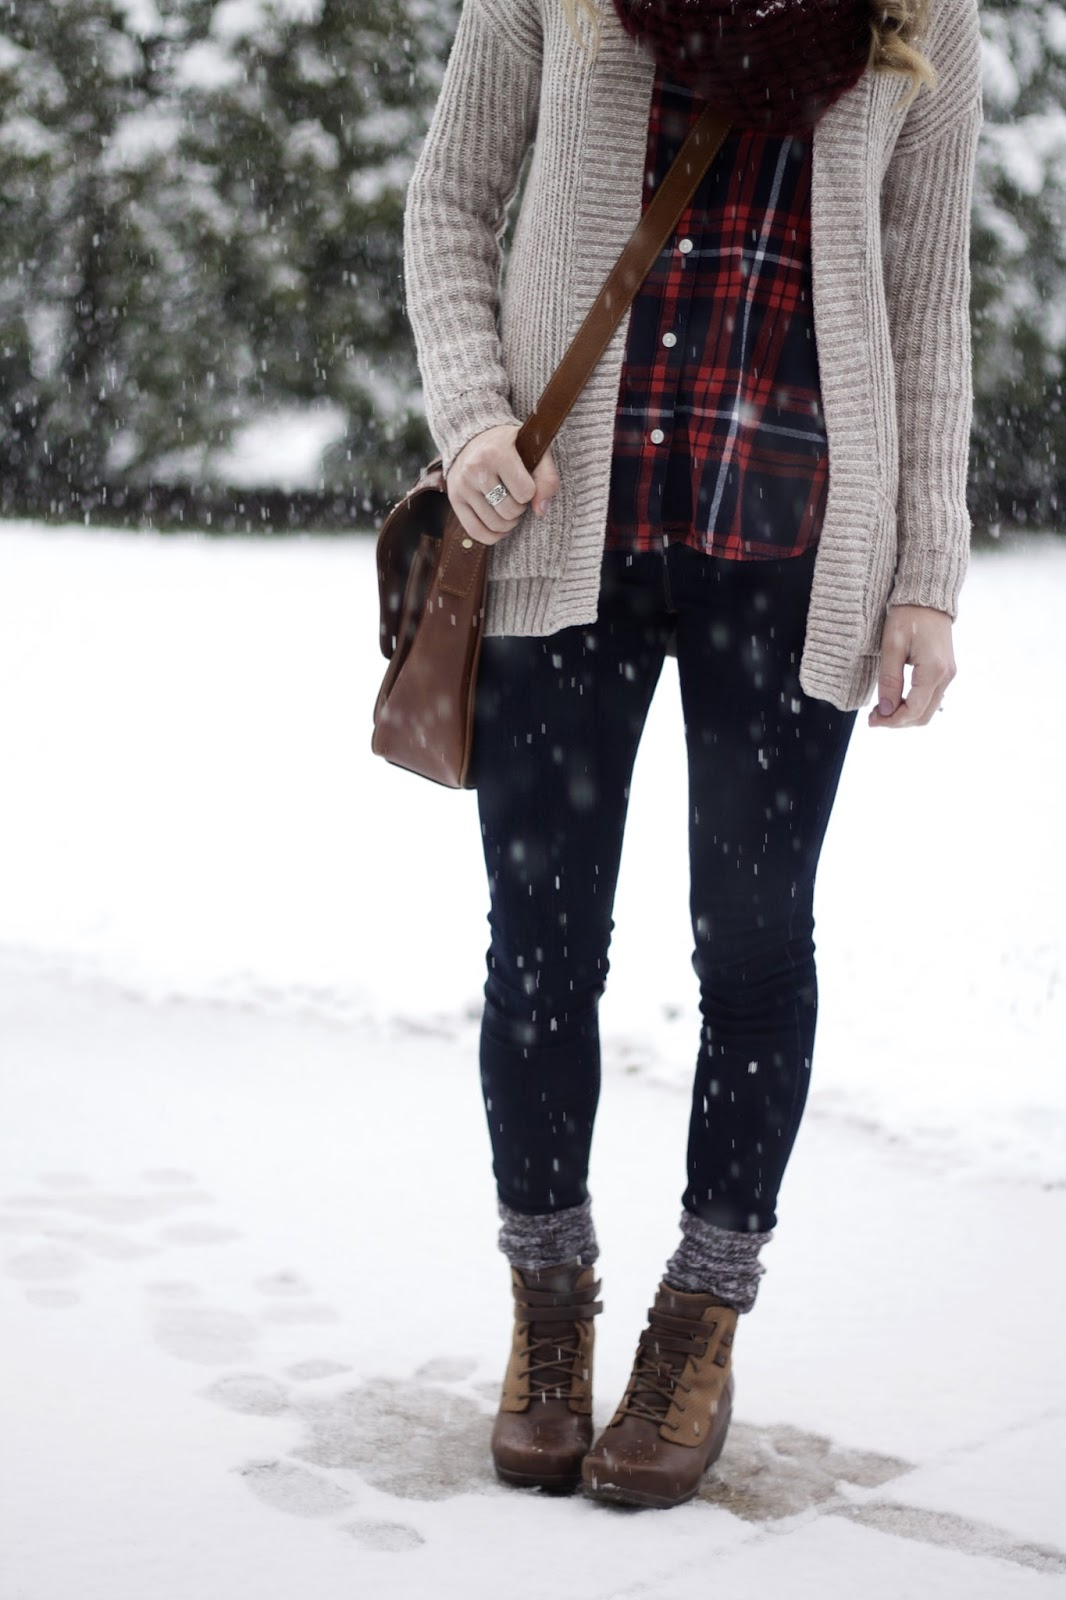 navy red plaid, neutral knit cardigan, Express skinny jeans, cable knit pom pom beanie, burgundy scarf, lace up wedge booties, crossbody bag